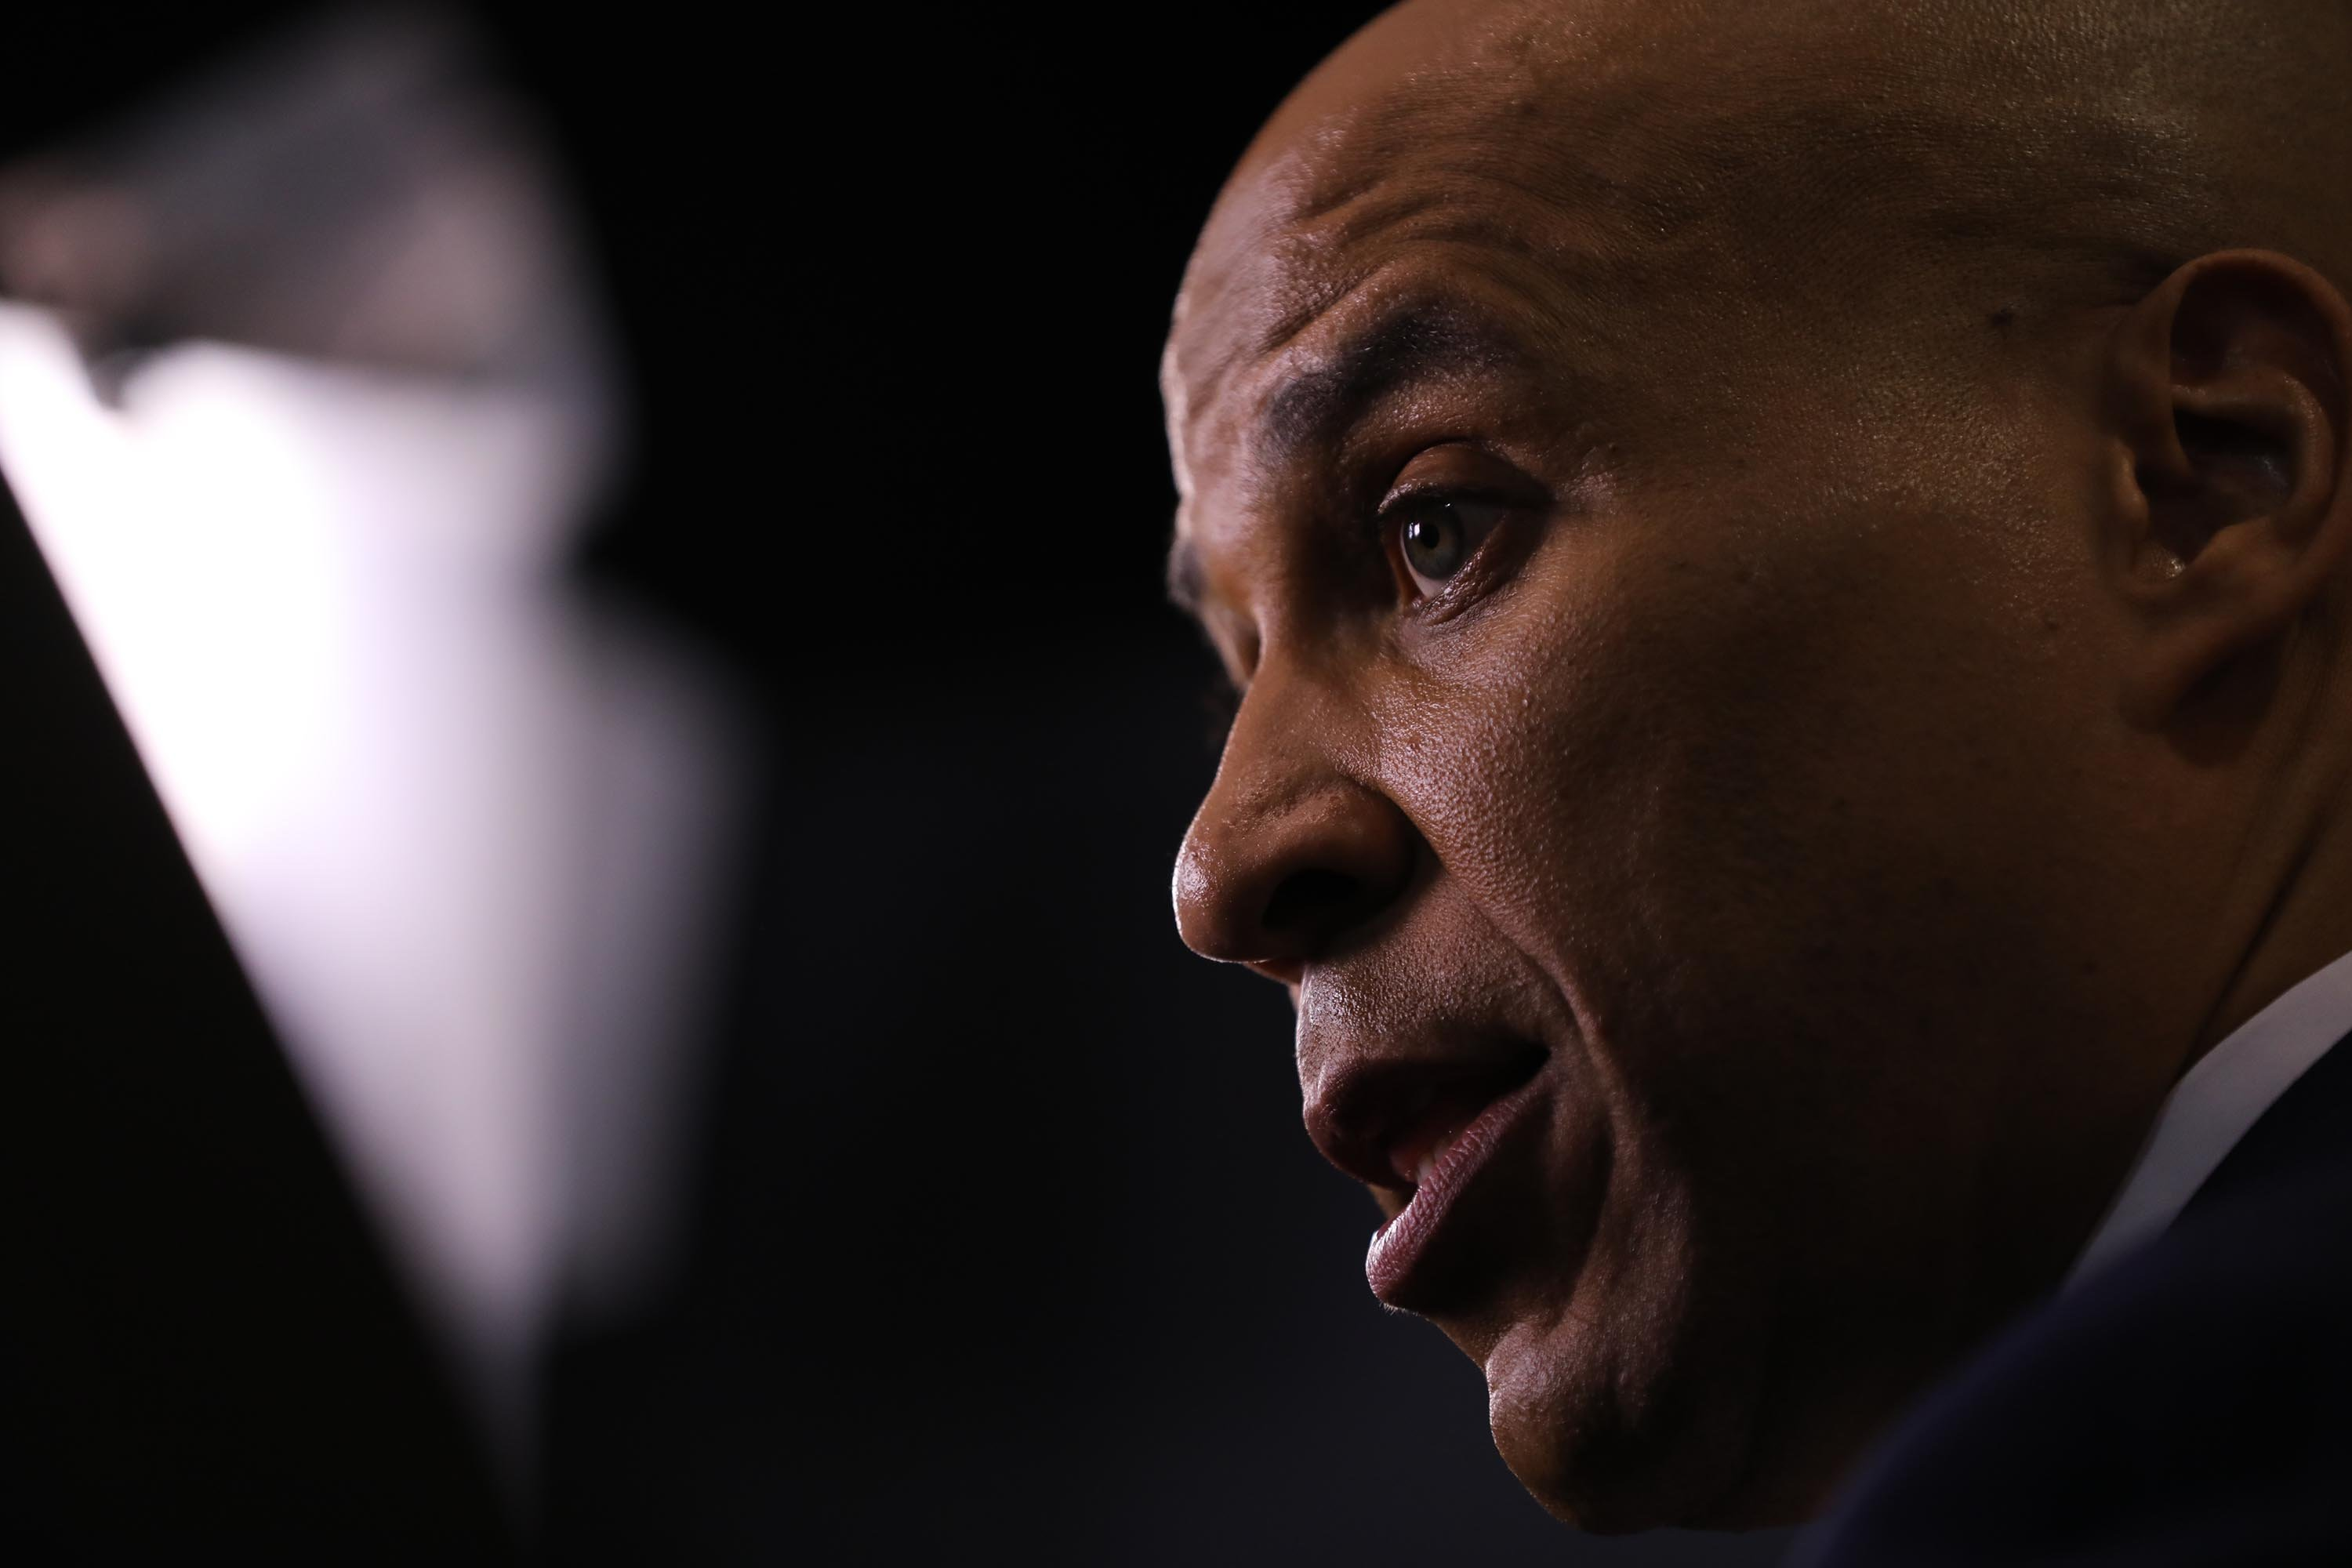 Cory Booker is poised to miss the next debate. He's vowing to fight on anyway.